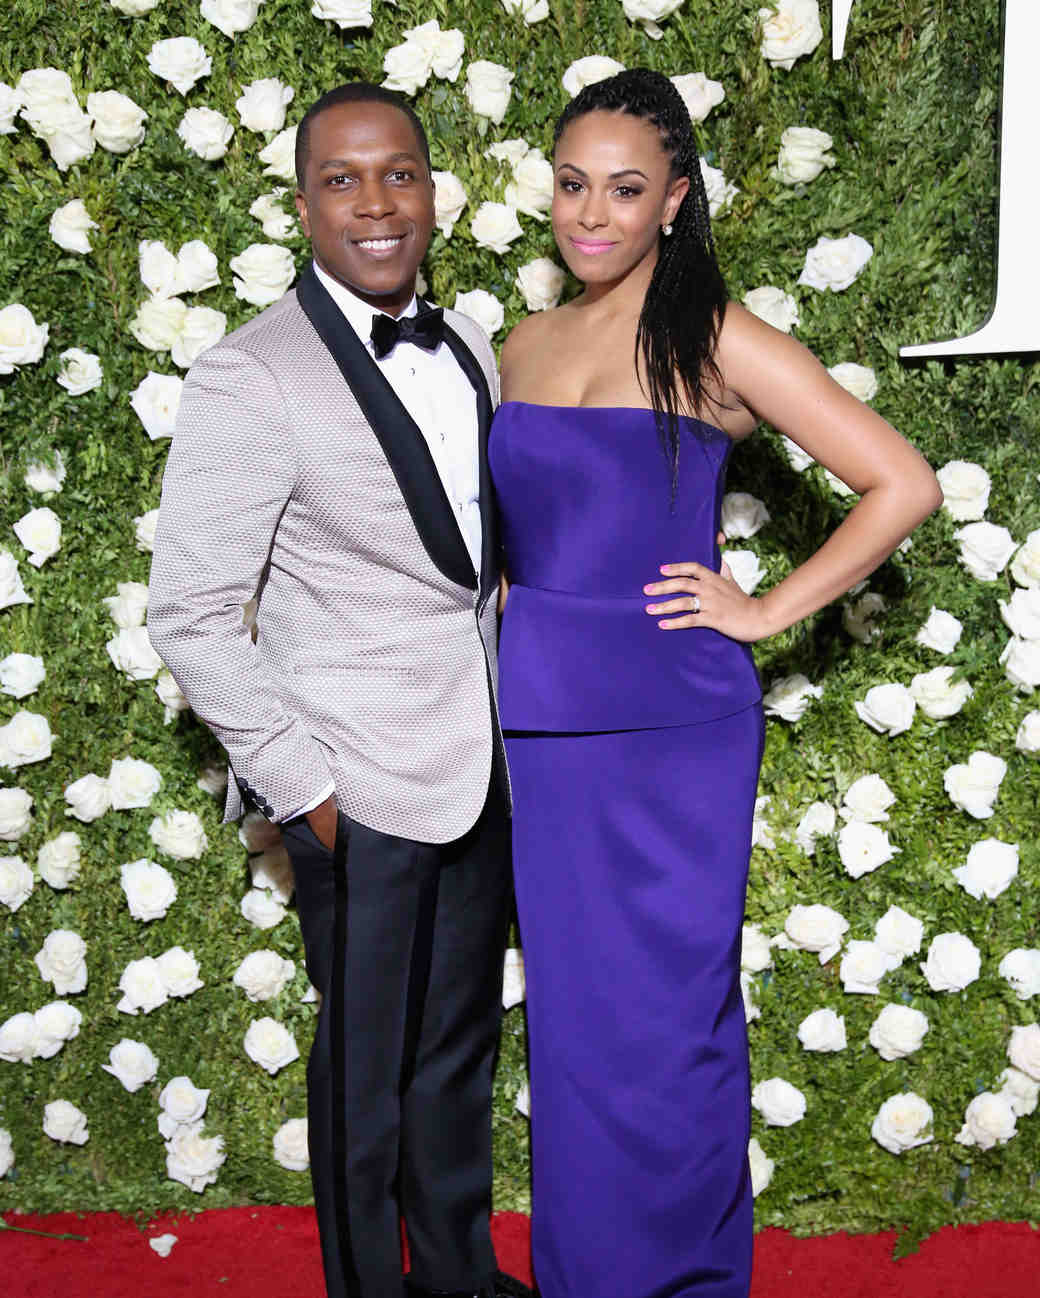 Leslie Odom Jr. and Nicolette Robinson at 2017 Tony Awards